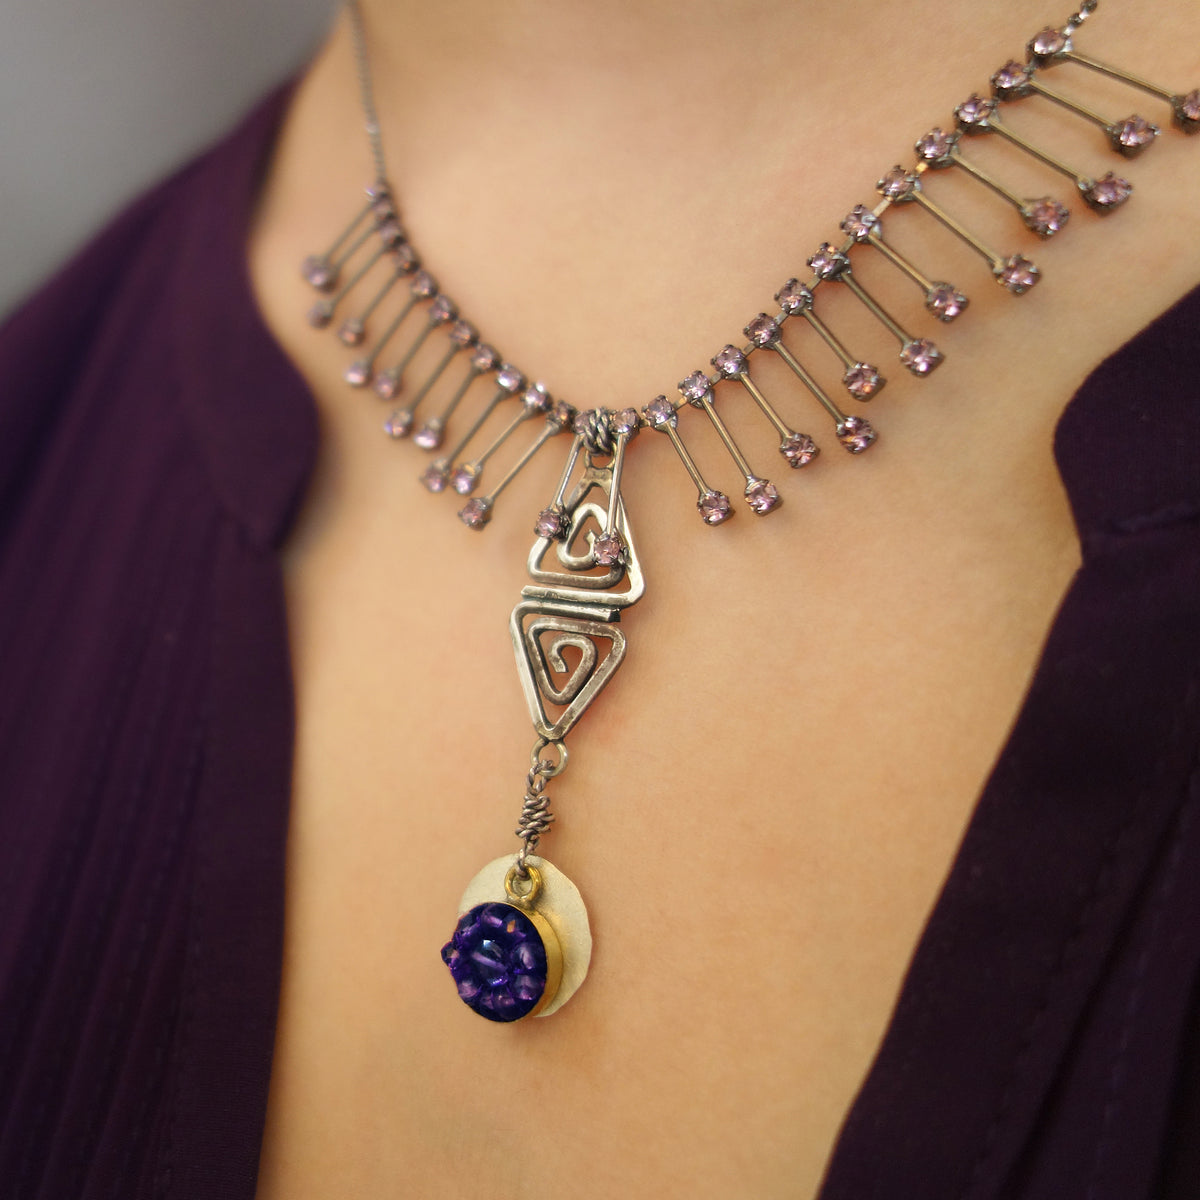 The Sun Rises at Dawn amethyst mosaic necklace